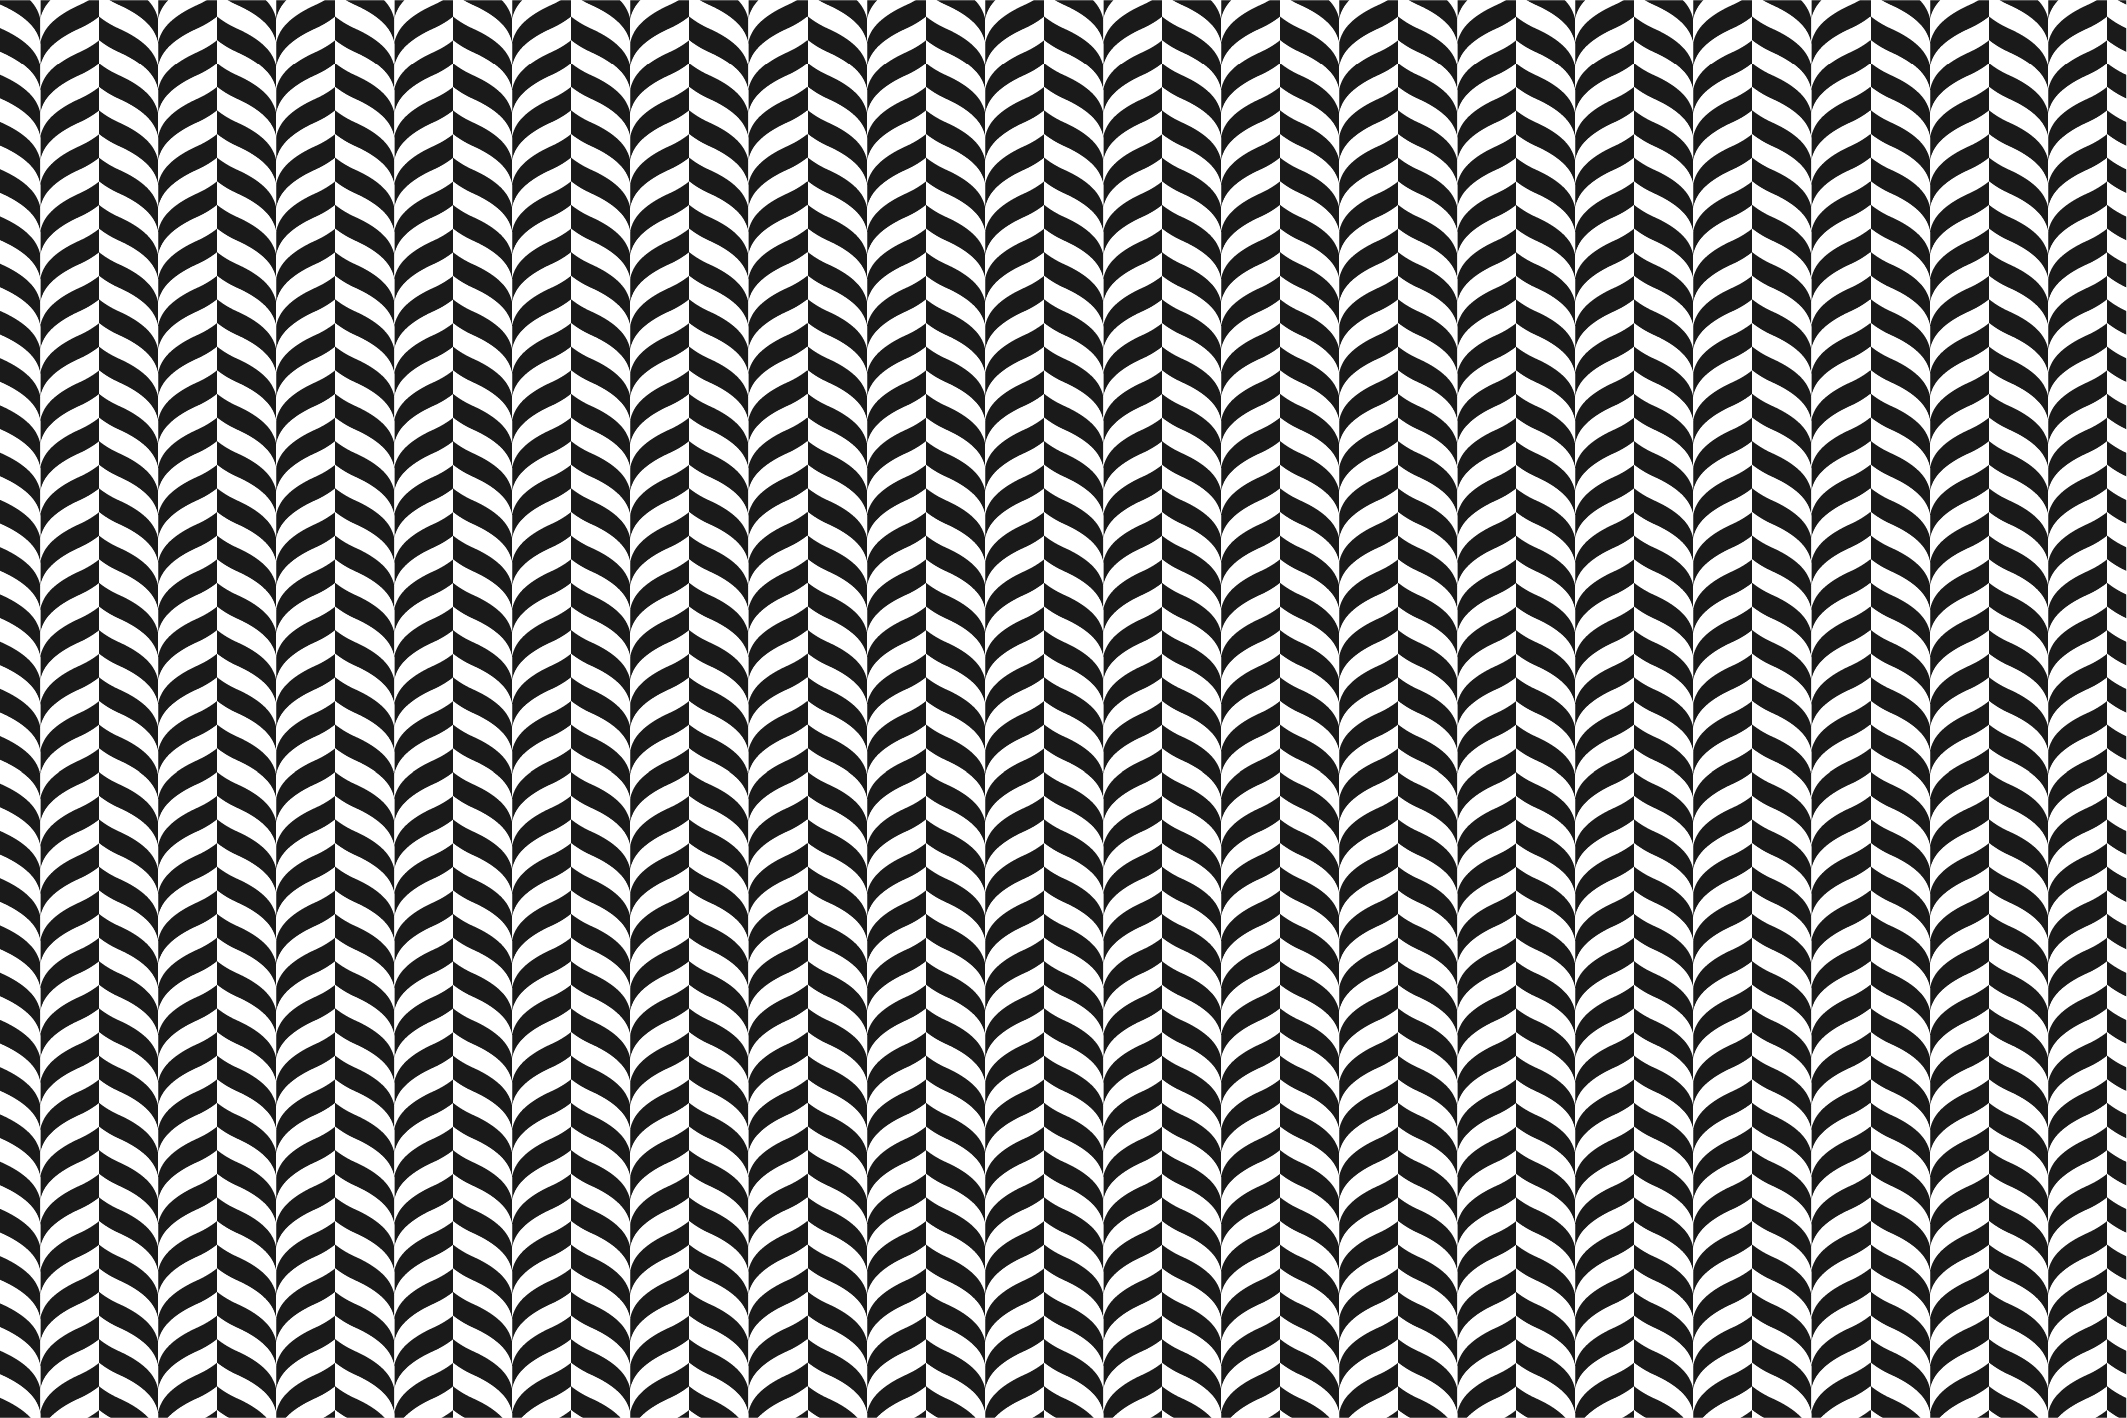 Geometric seamless patterns. B&W. example image 3